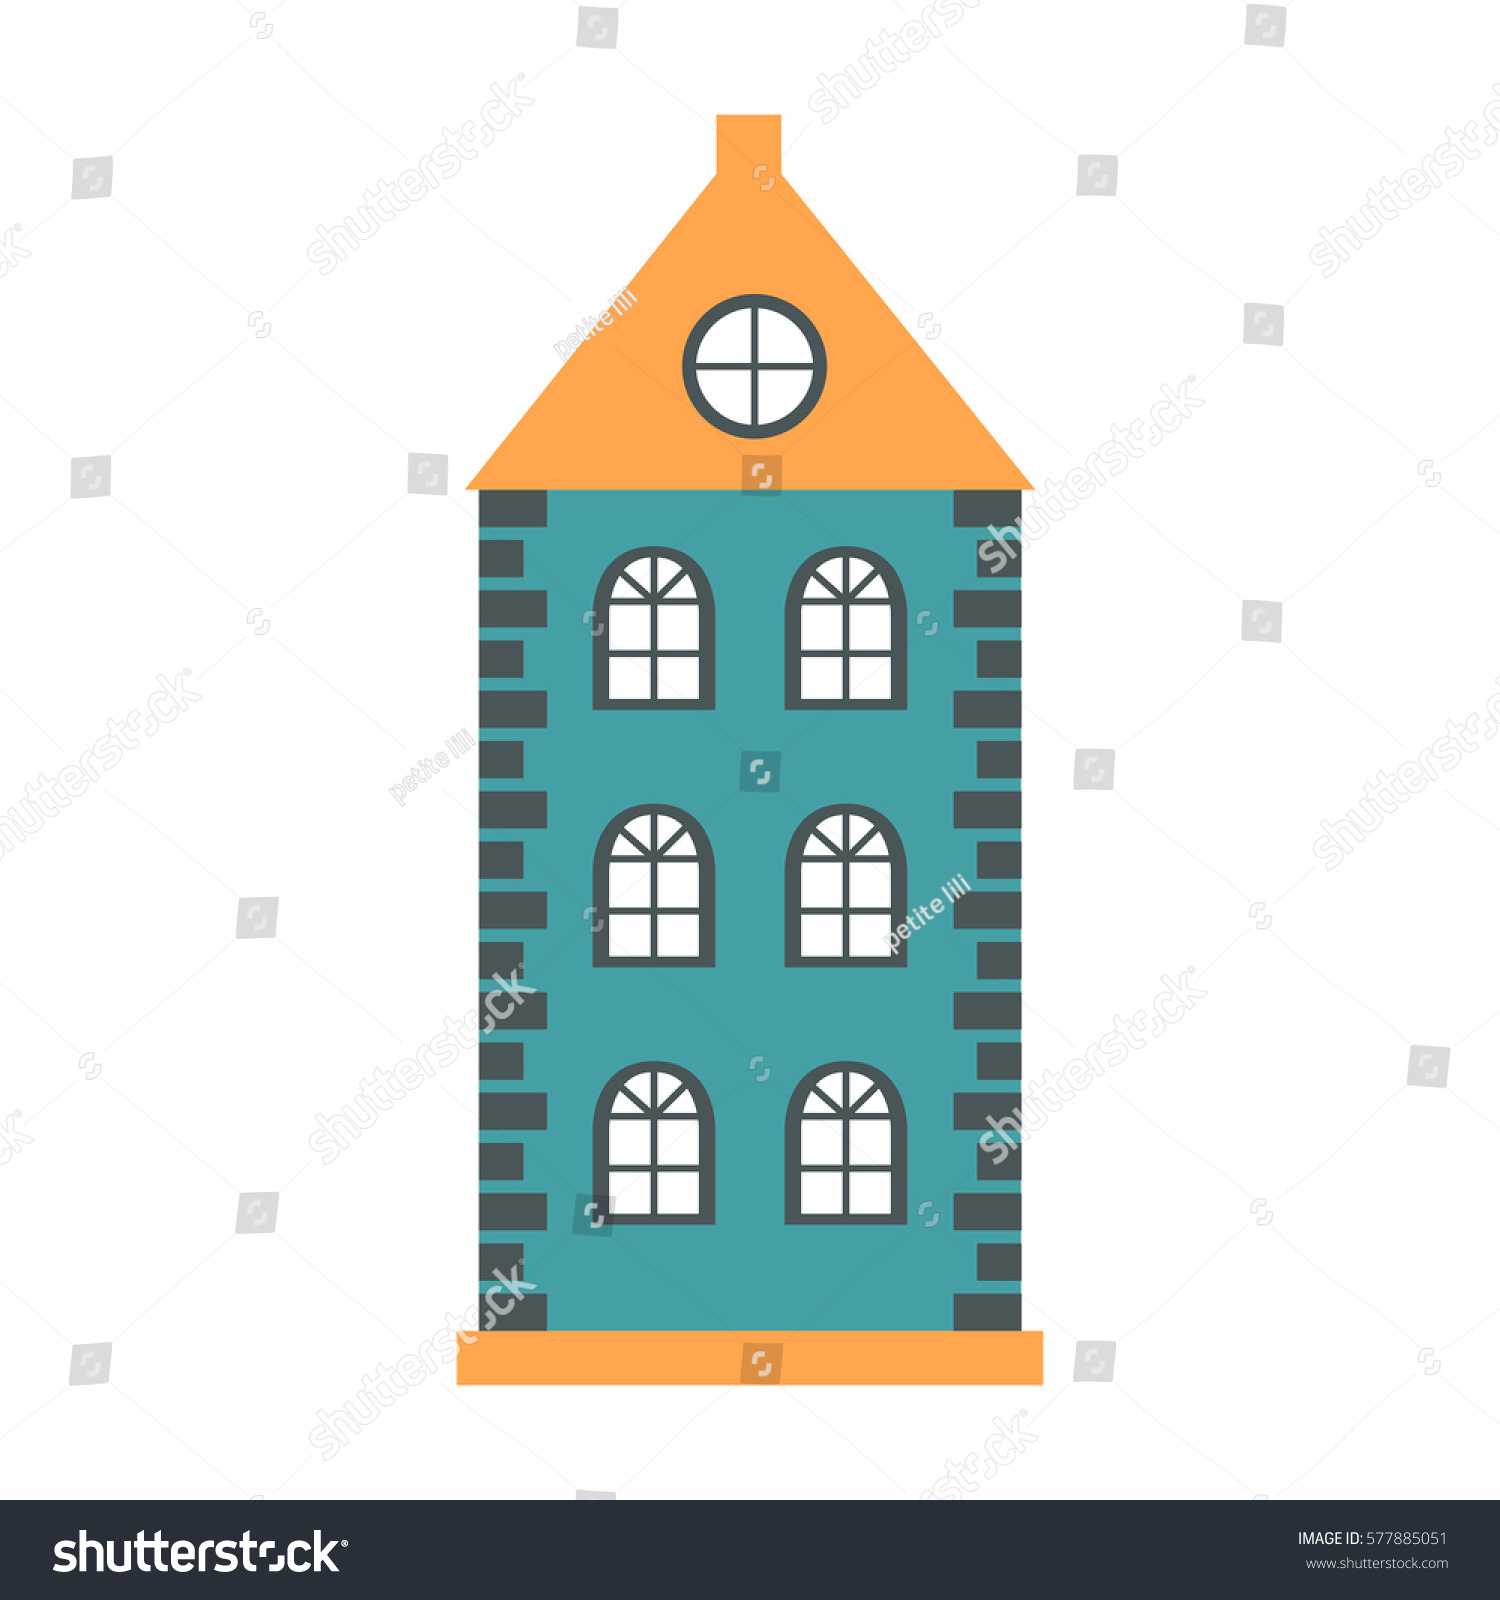 House design cartoon - Vector Illustration With Flat Cartoon House For City Or Town Design Urban Landscape Background